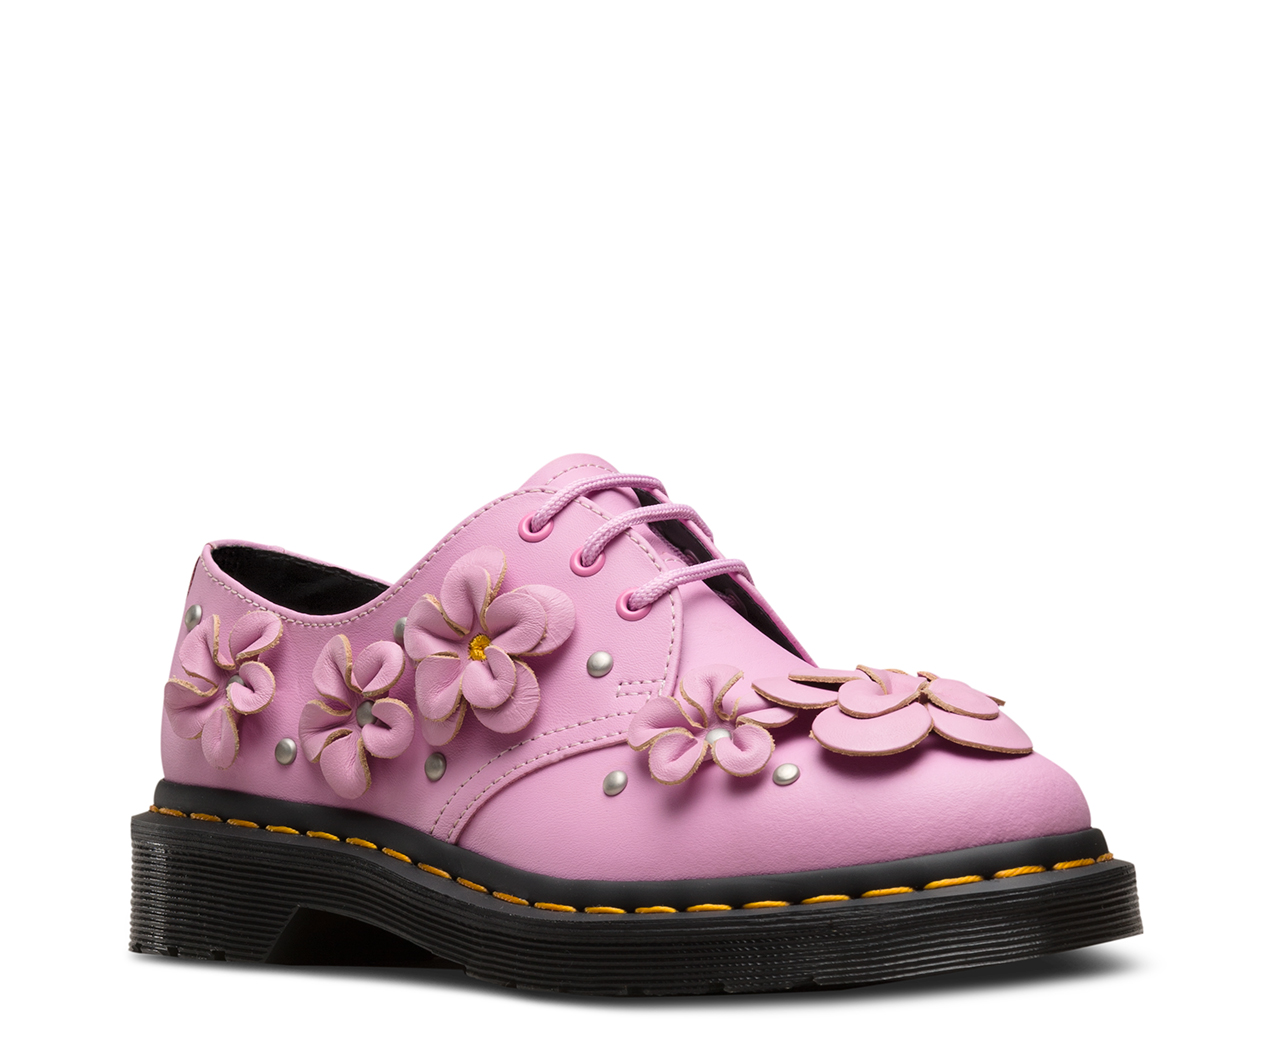 1461 flower womens boots shoes official dr martens store mightylinksfo Image collections